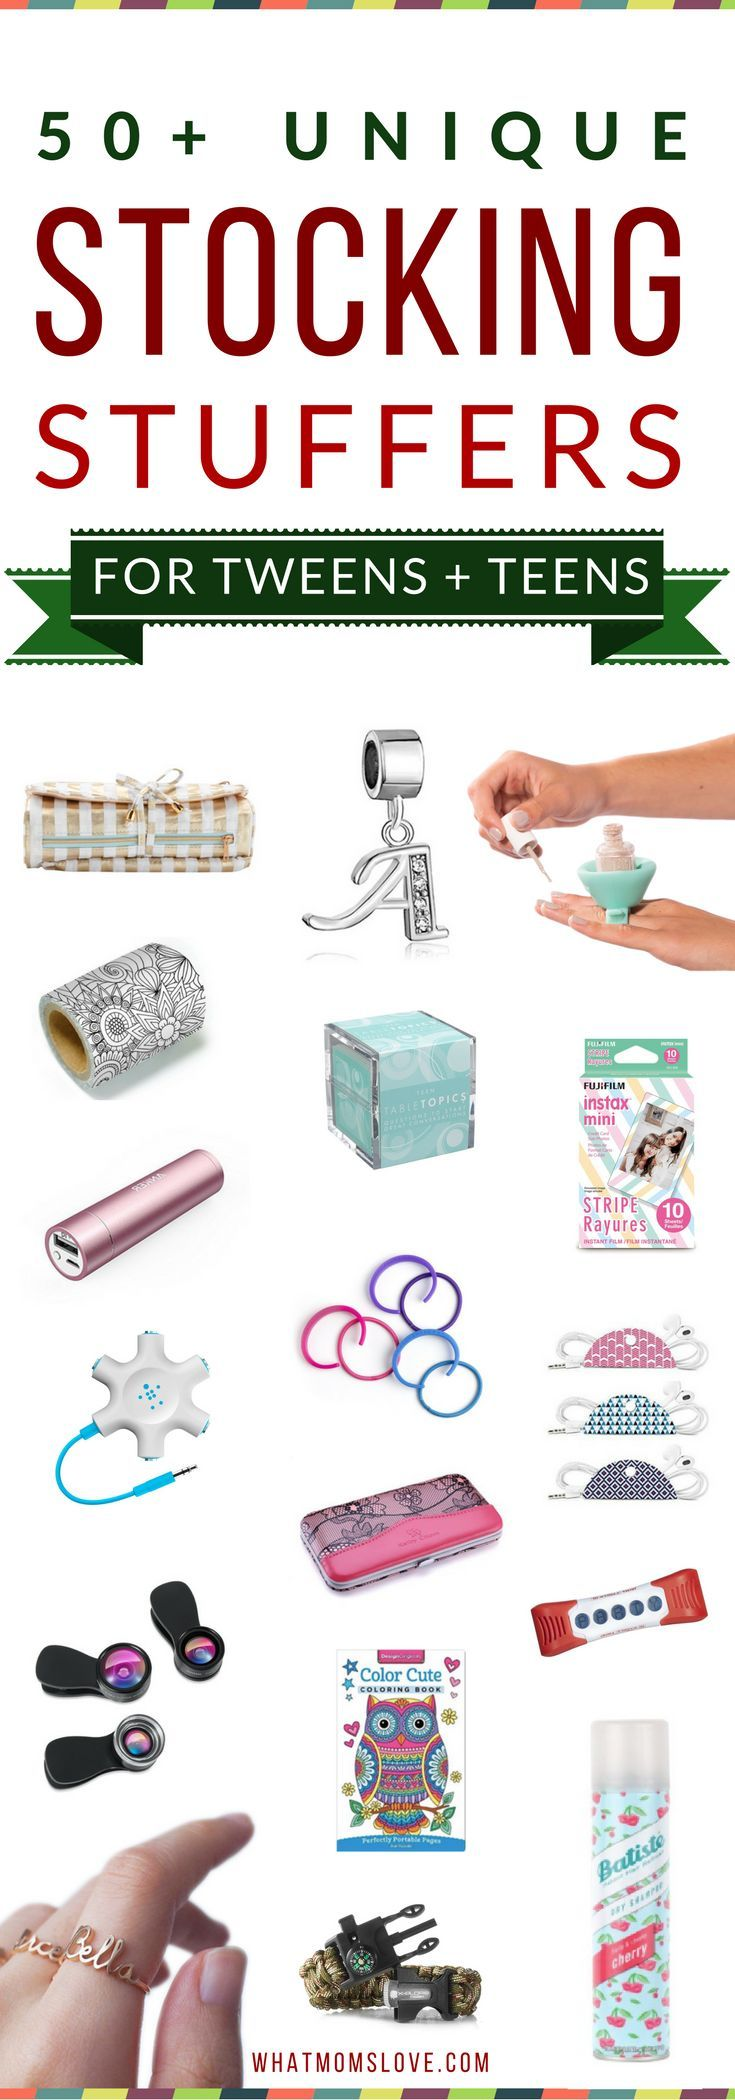 250+ Unique Stocking Stuffers For Kids (That Aren't Junk!)